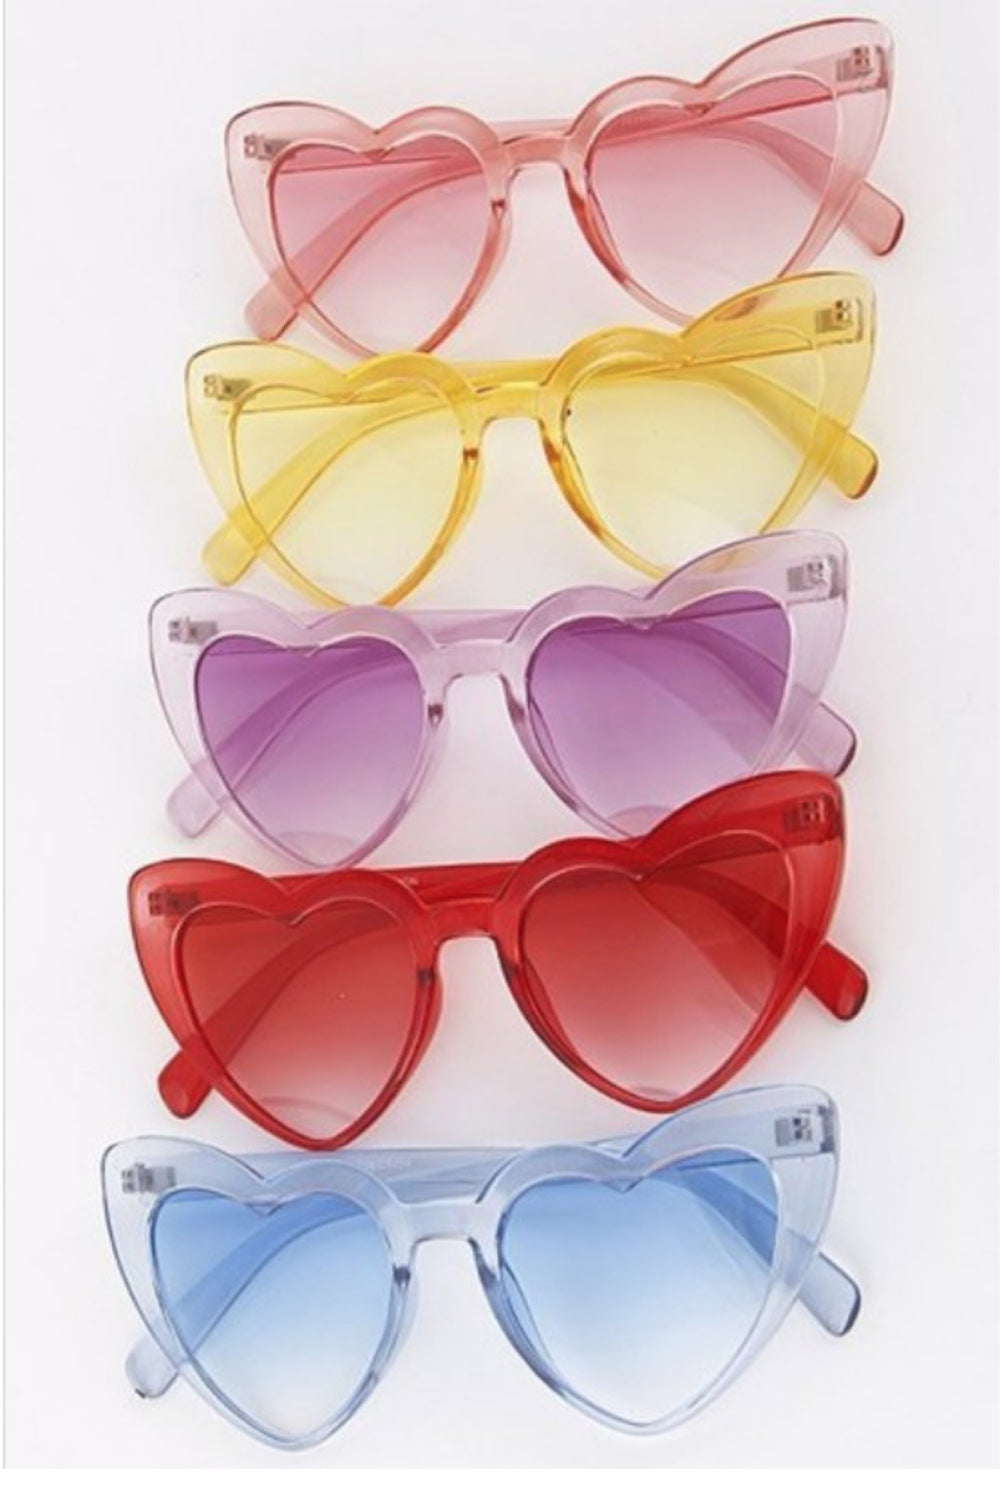 Transluscent Neon Heart Shaped Sunnies